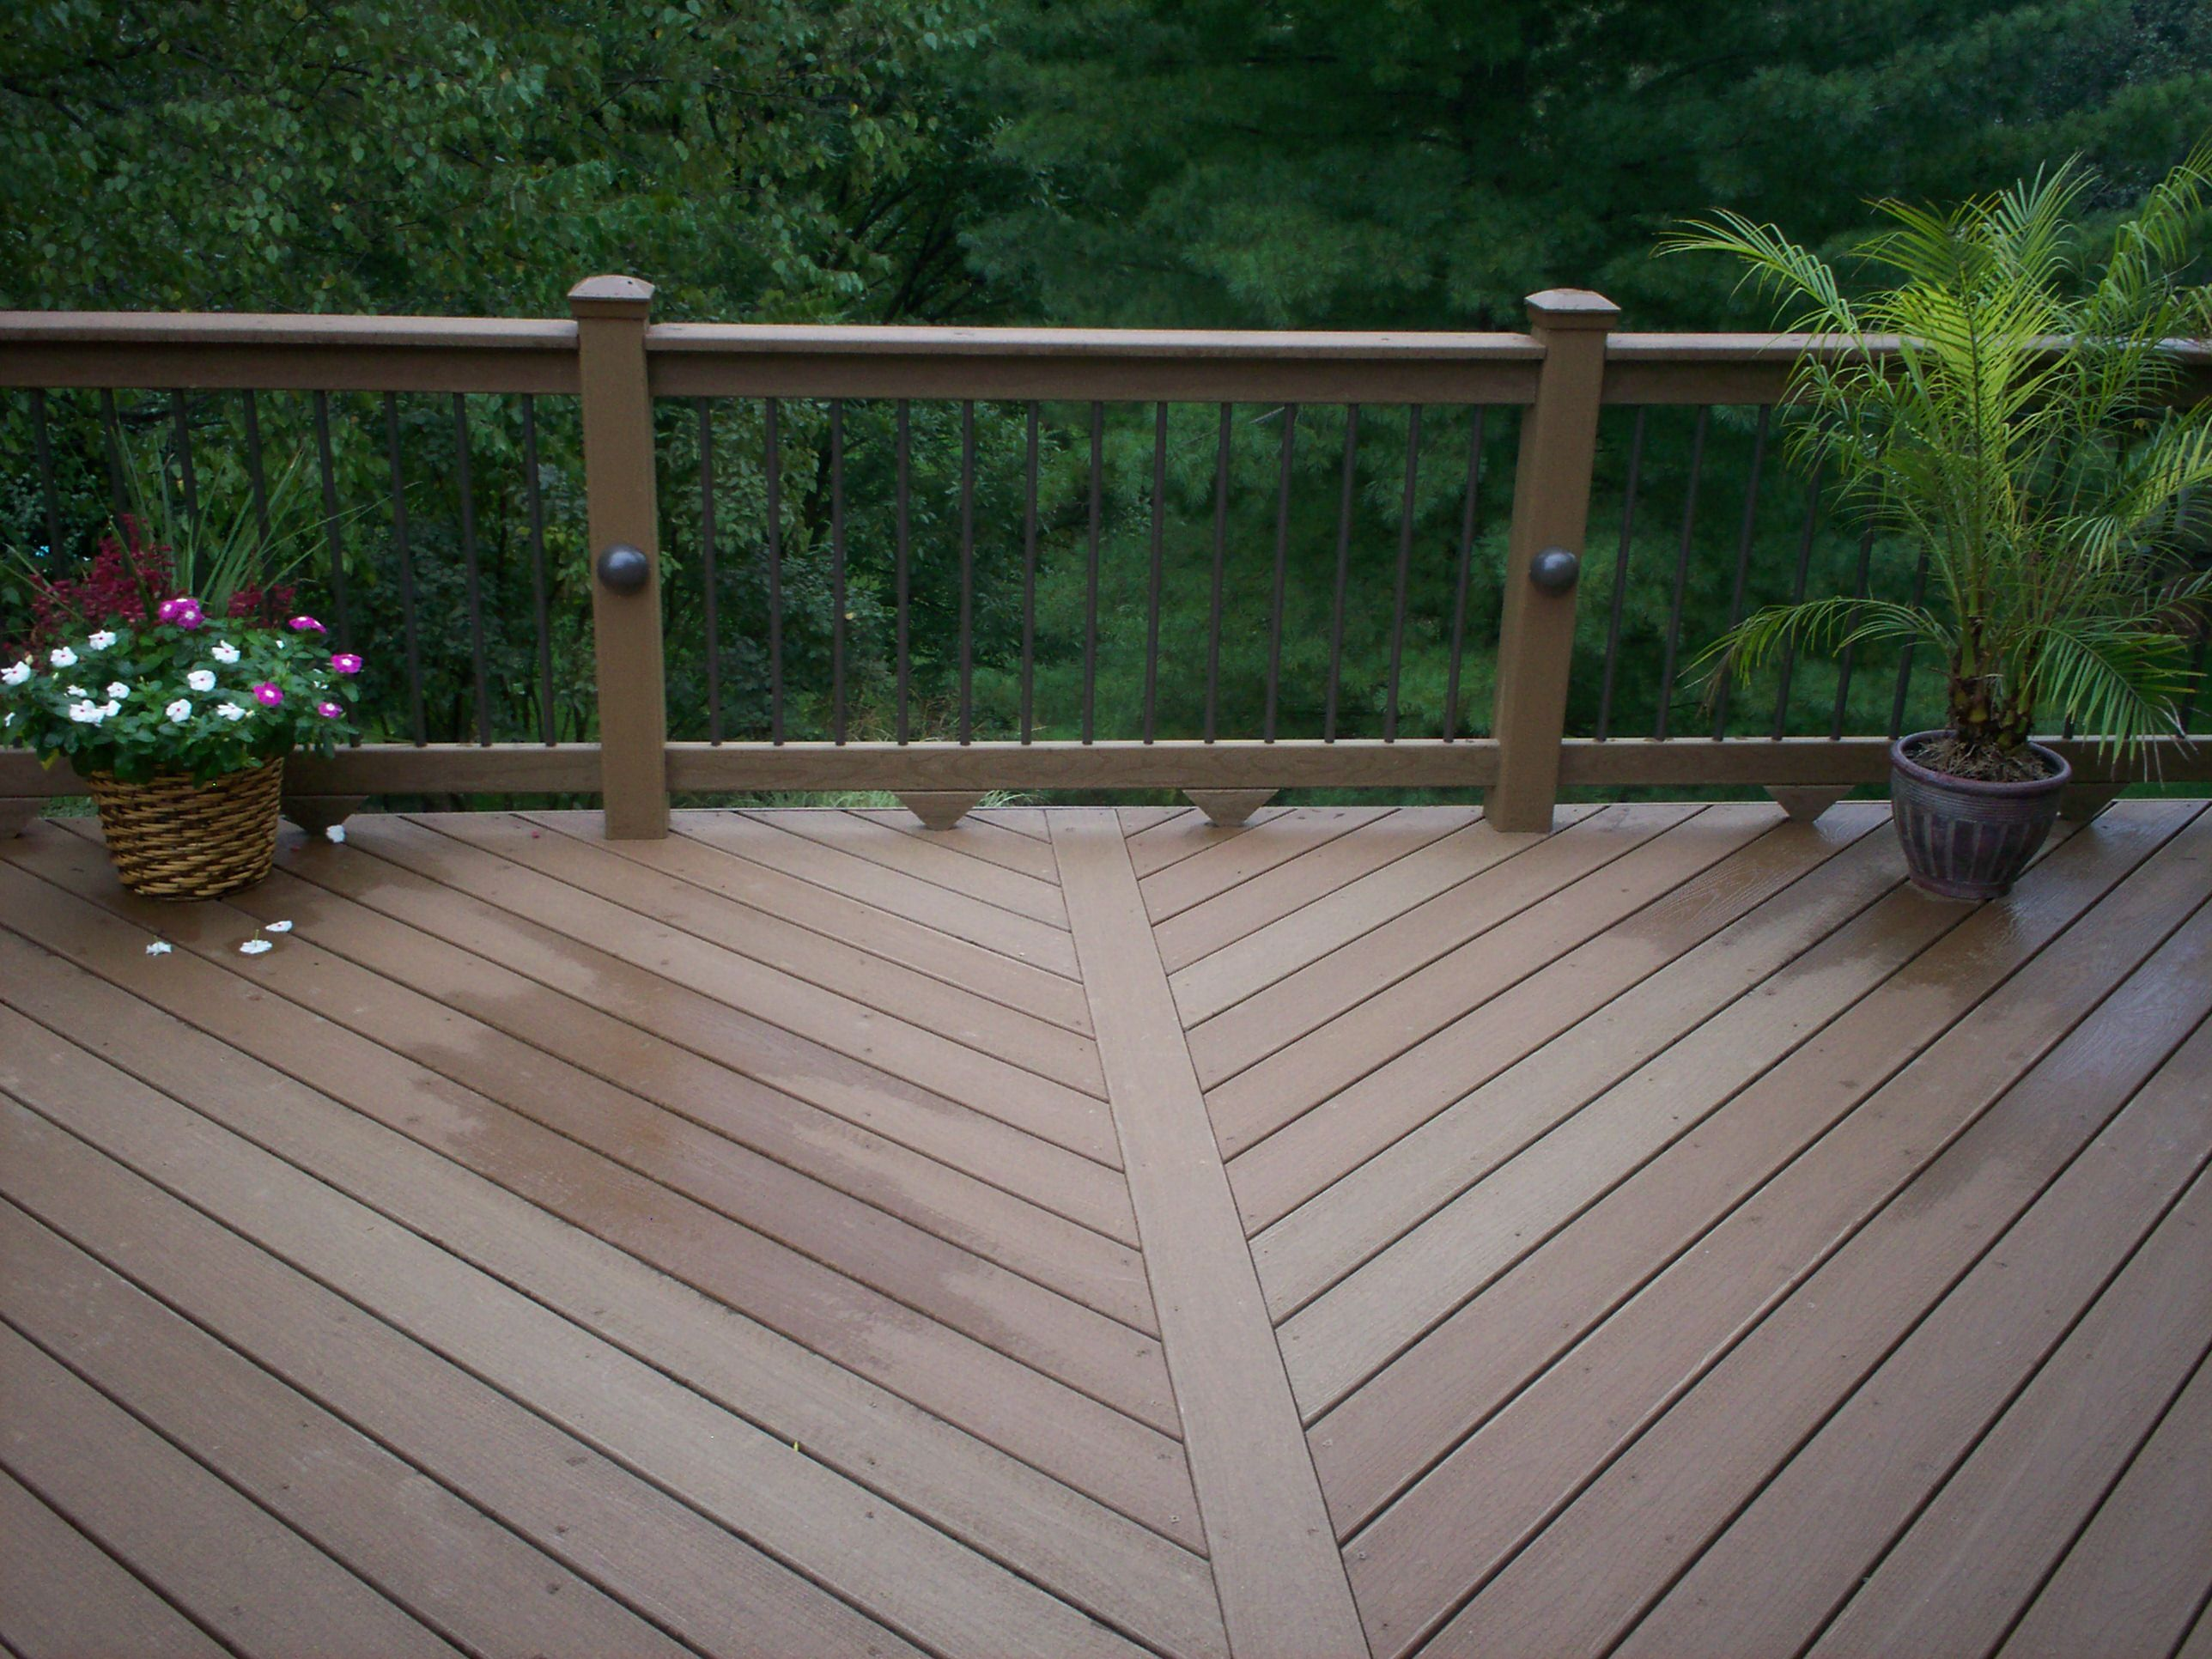 comely deck designs for 2 story house. This deck design includes low maintenance materials  diagonal floor pattern sleek balusters for an open view and rail lights evening ambience St Louis Deck Designs with Floor Board Patterns